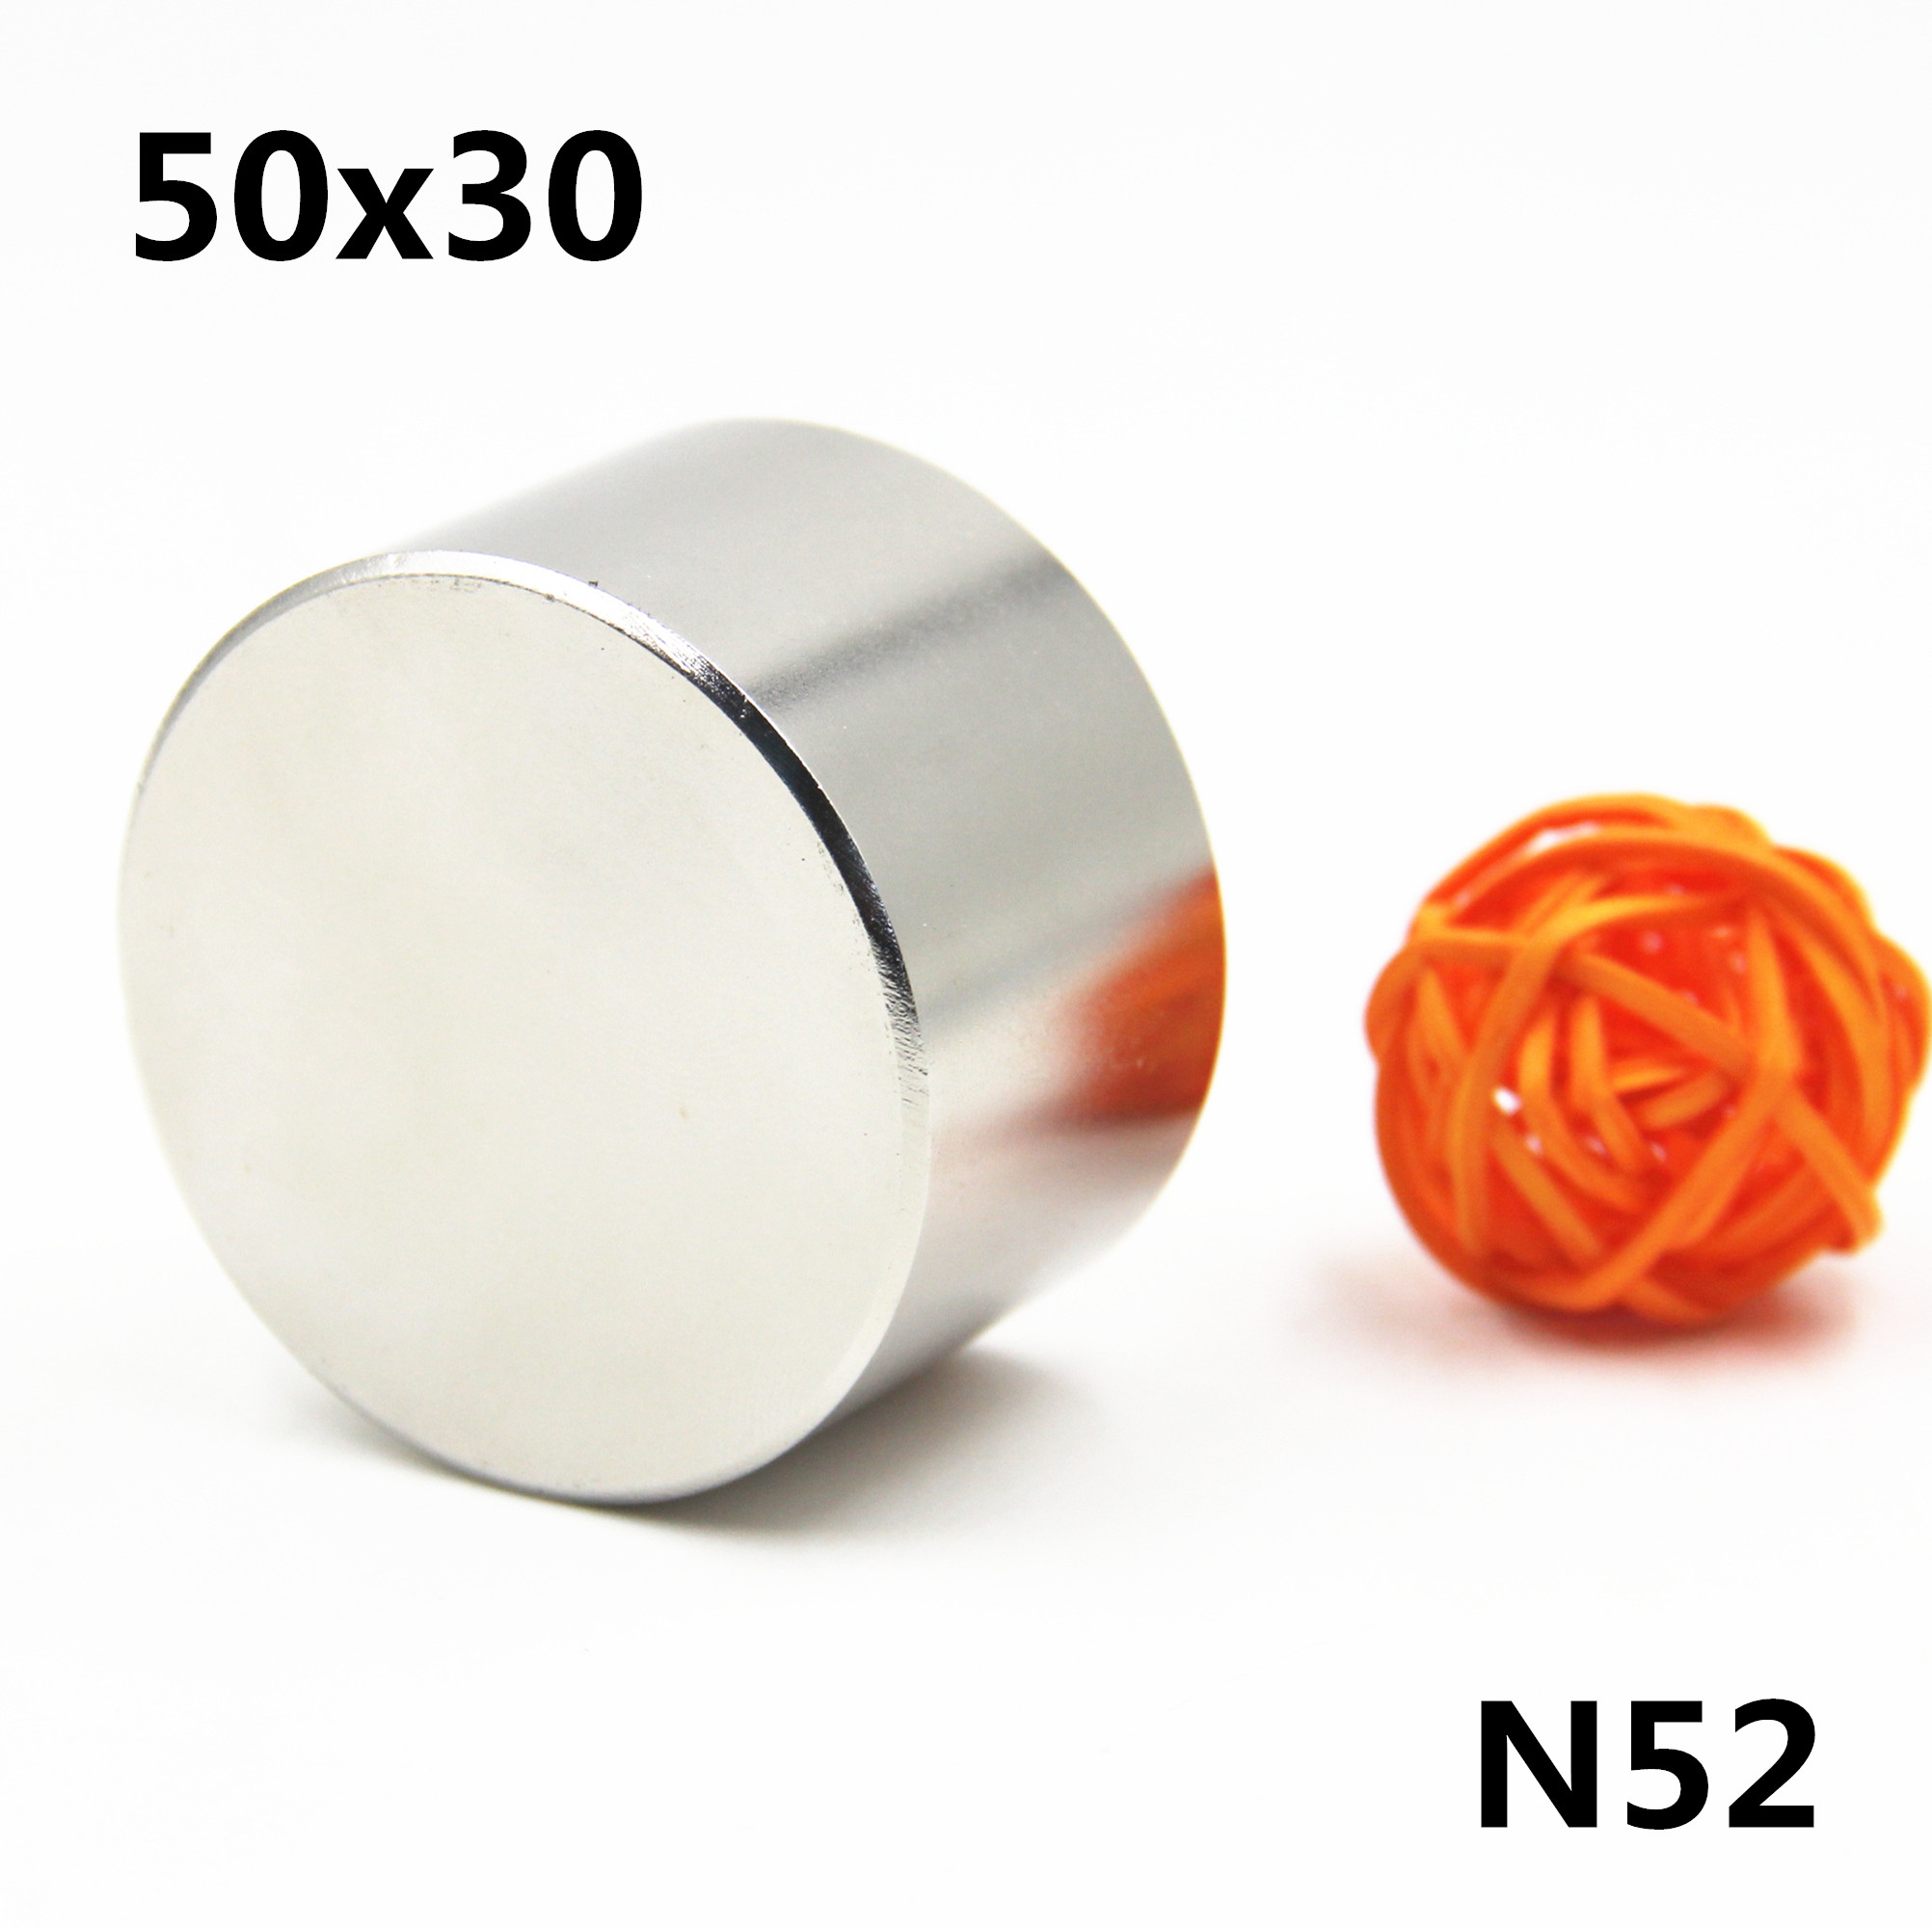 Strong <font><b>Magnet</b></font> 1pc/lot N52 50x30mm hot round Strong <font><b>magnet</b></font> Rare Earth N35 N40 D40-<font><b>50mm</b></font> Neodymium <font><b>Magnet</b></font> powerful permanent magne image